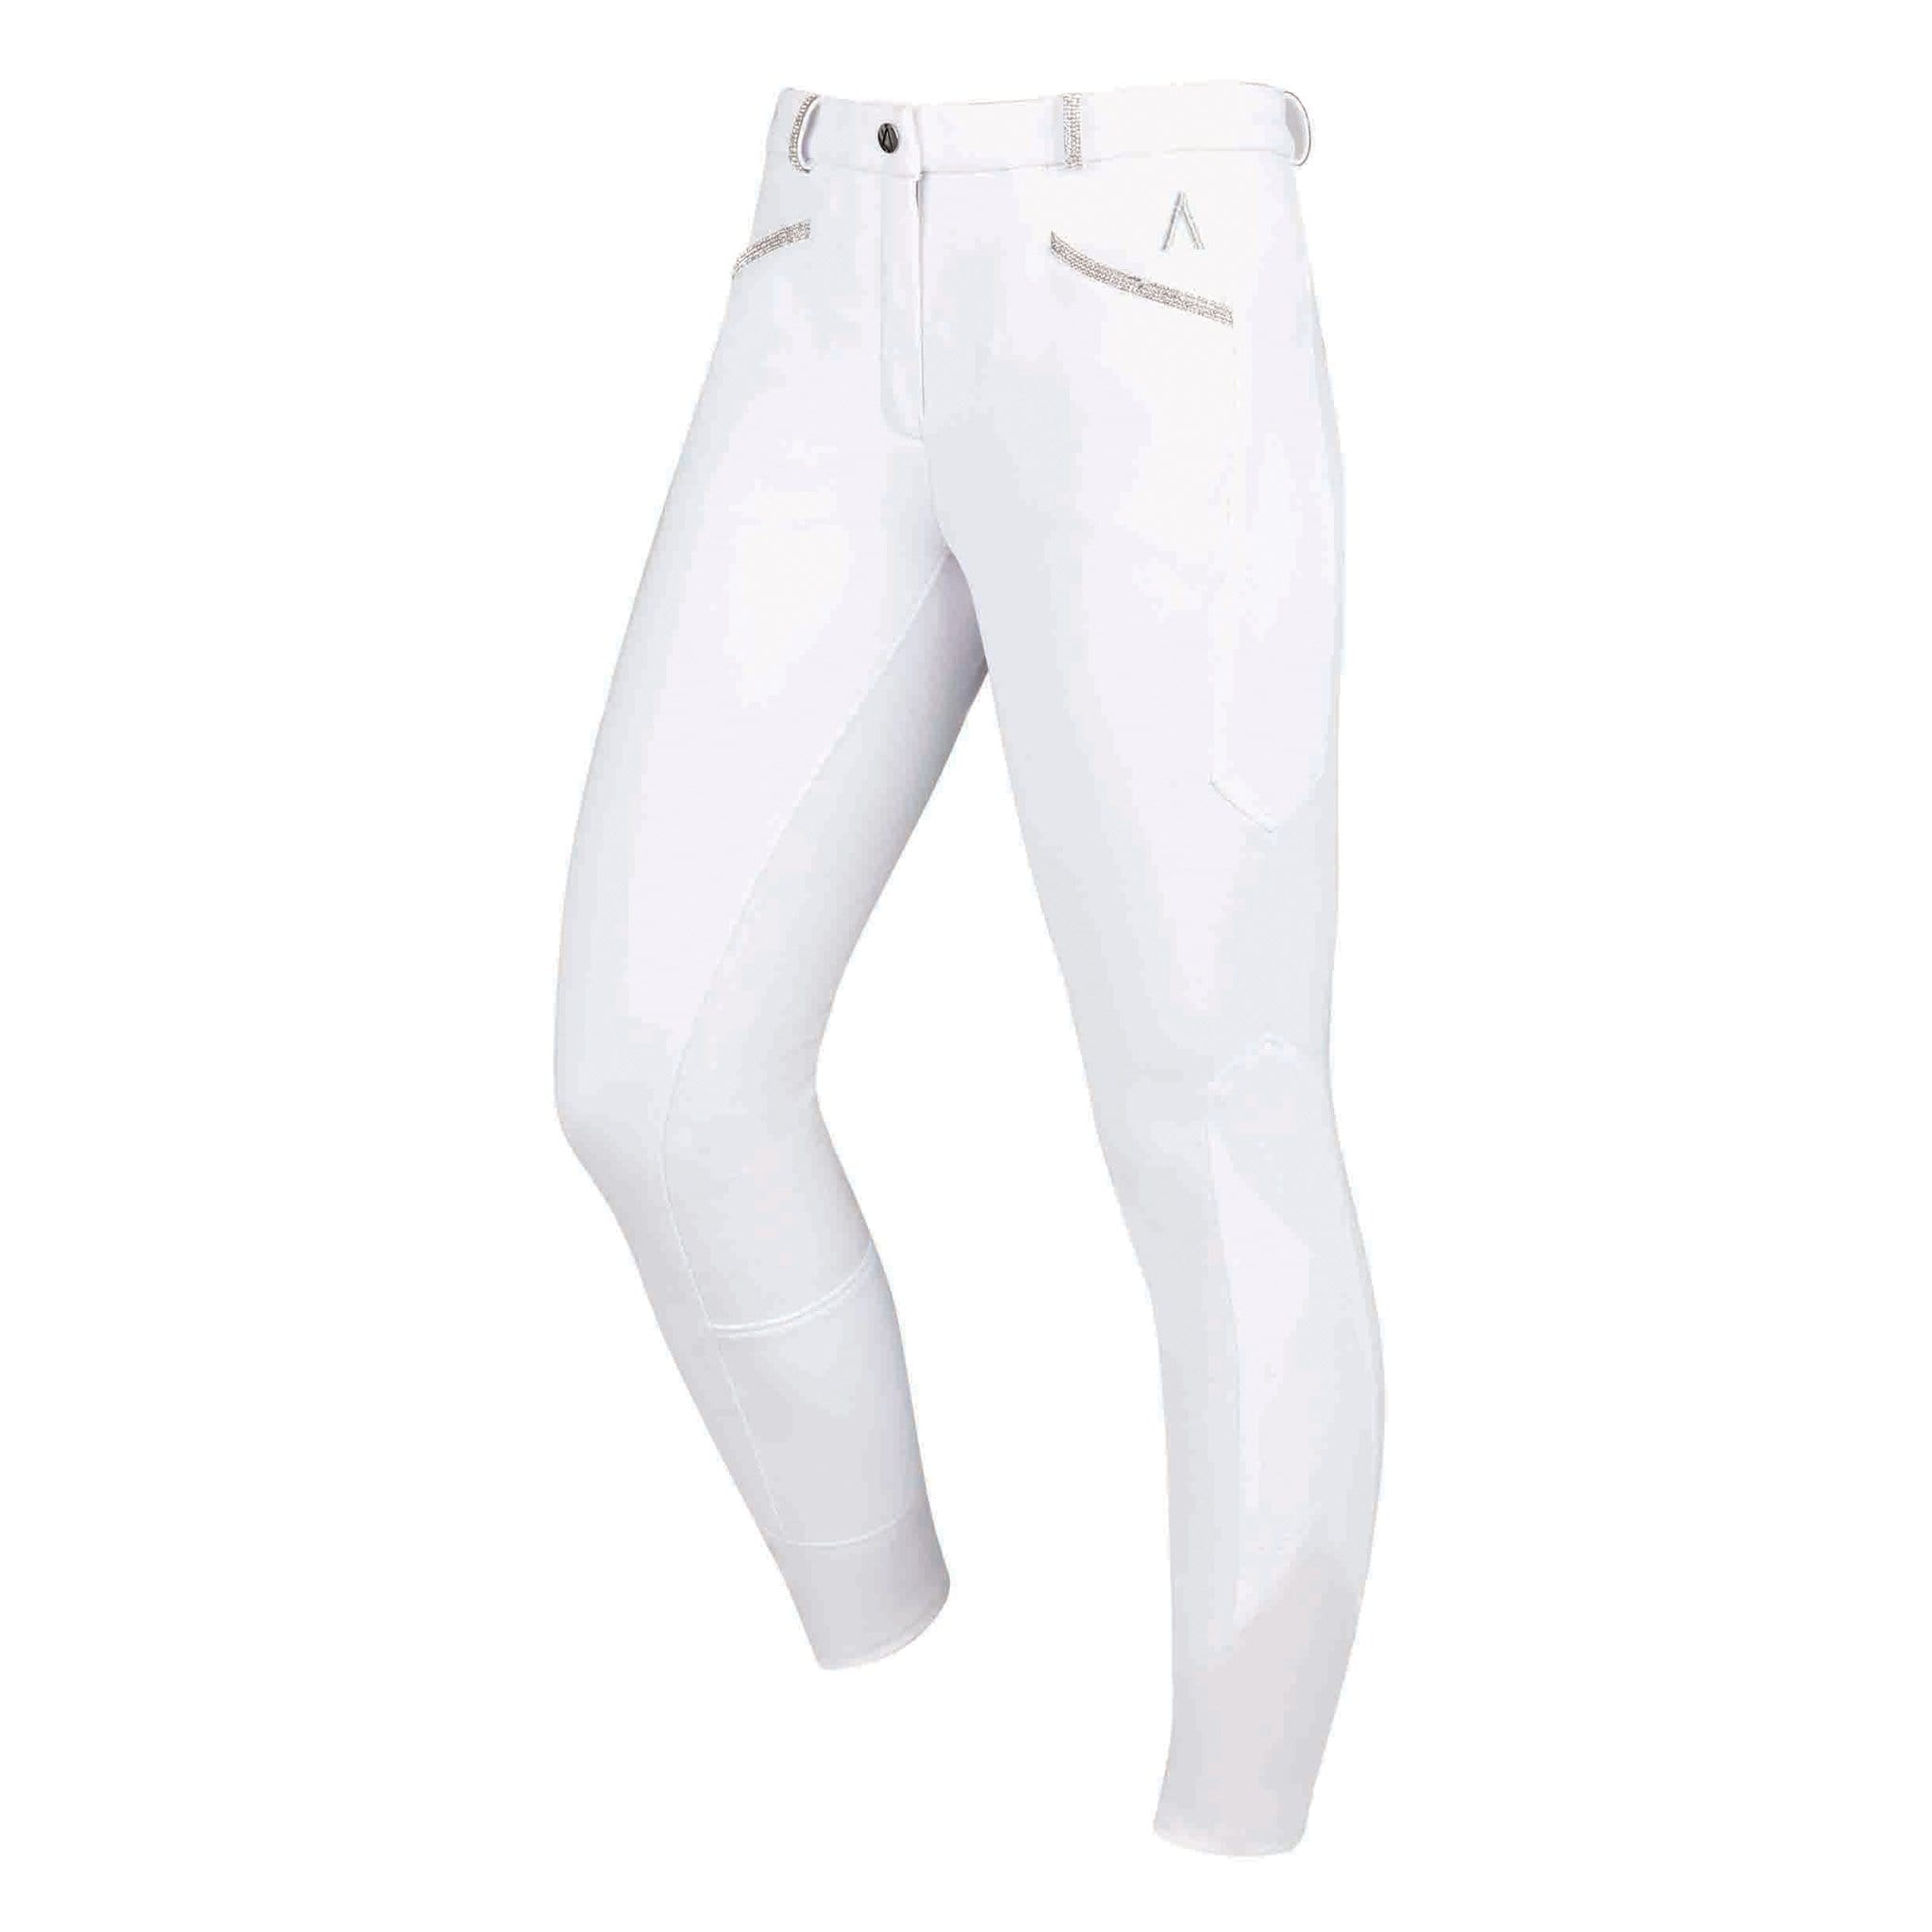 Dublin Black Linda Silicone Full Seat Breeches 1001556017 White Front